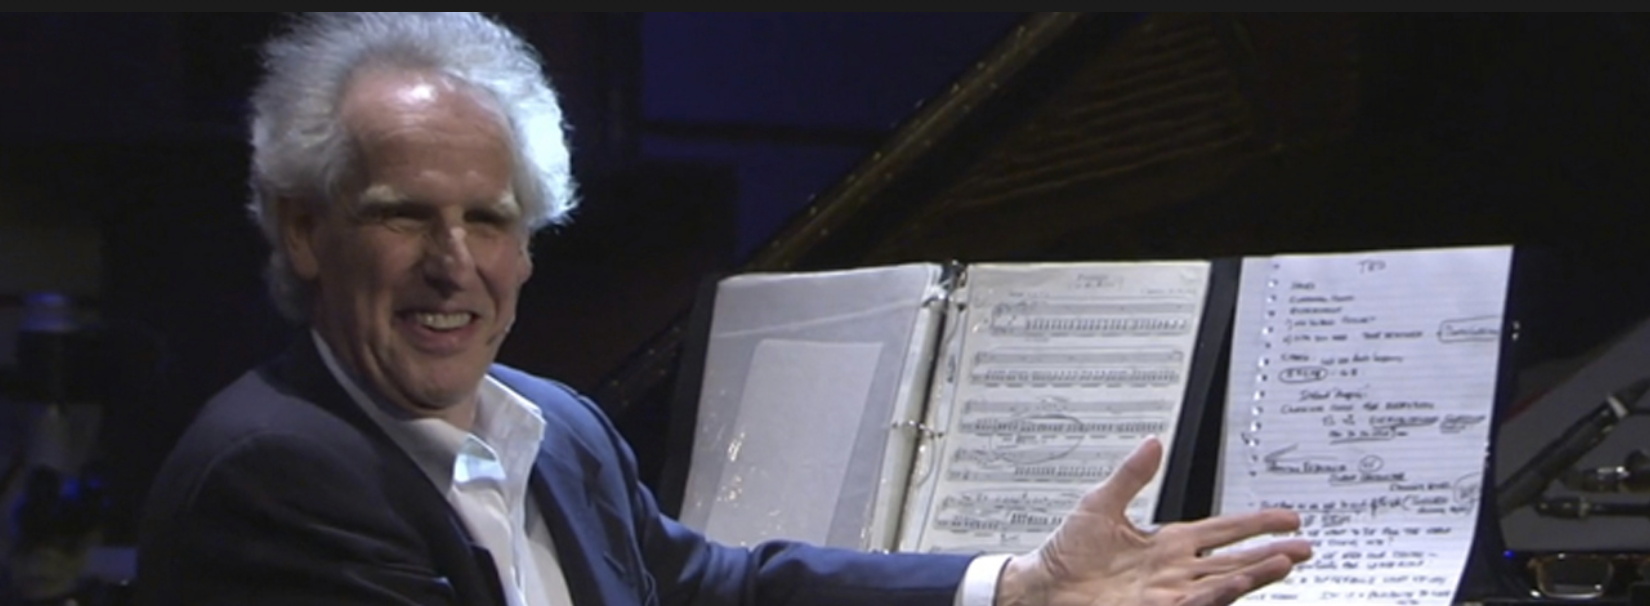 Benjamin Zander's is as much of a captivating master with music as he is with words